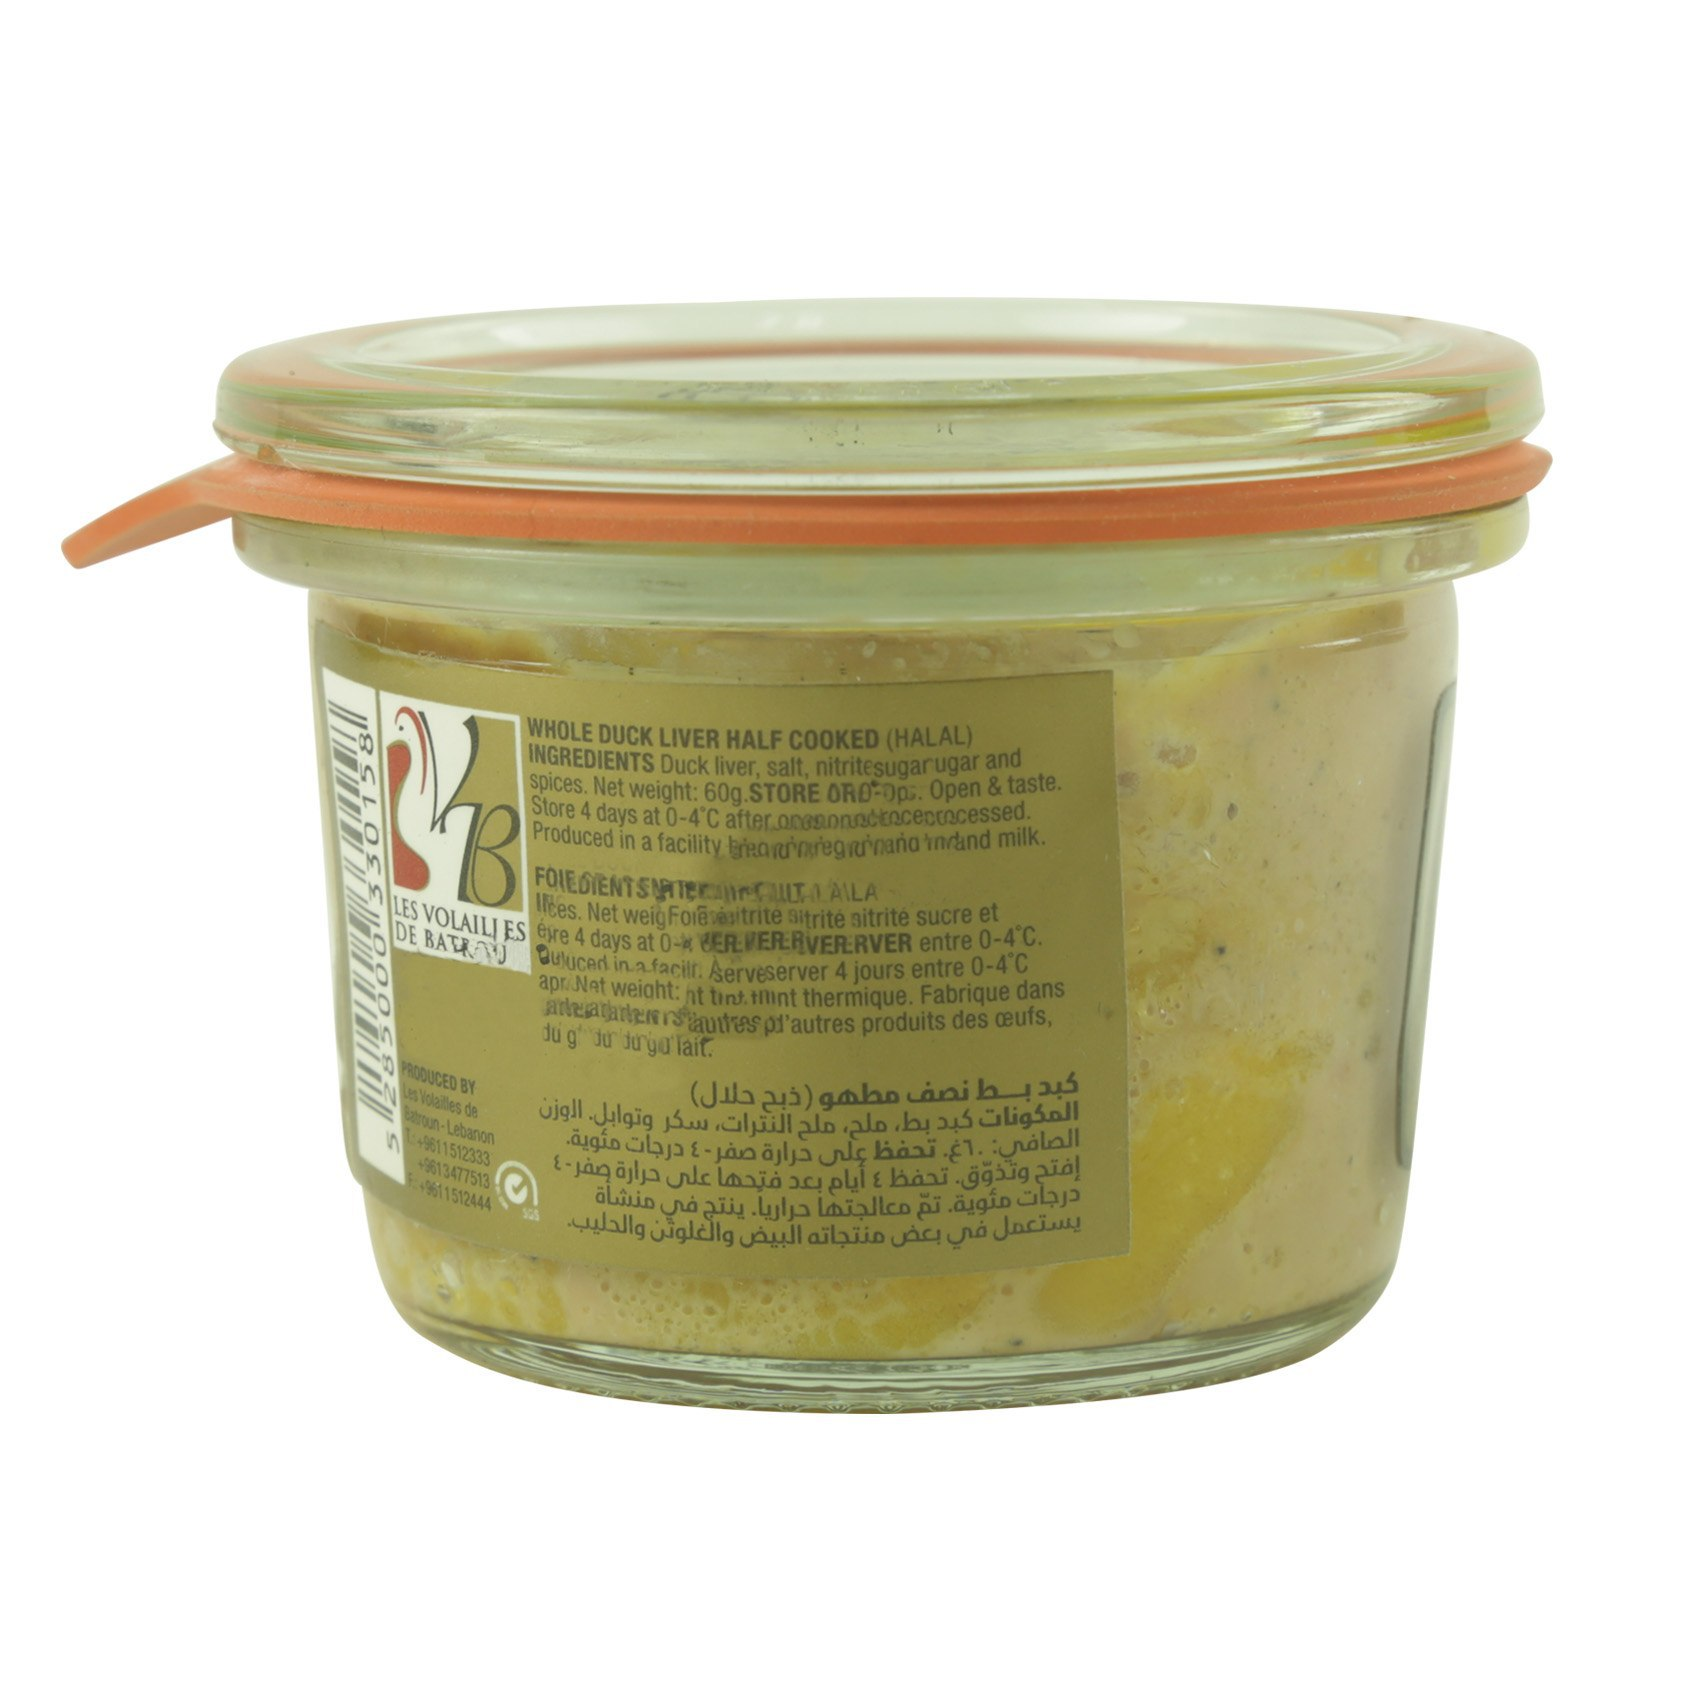 ST JACQUES DUCK LIVER 60G